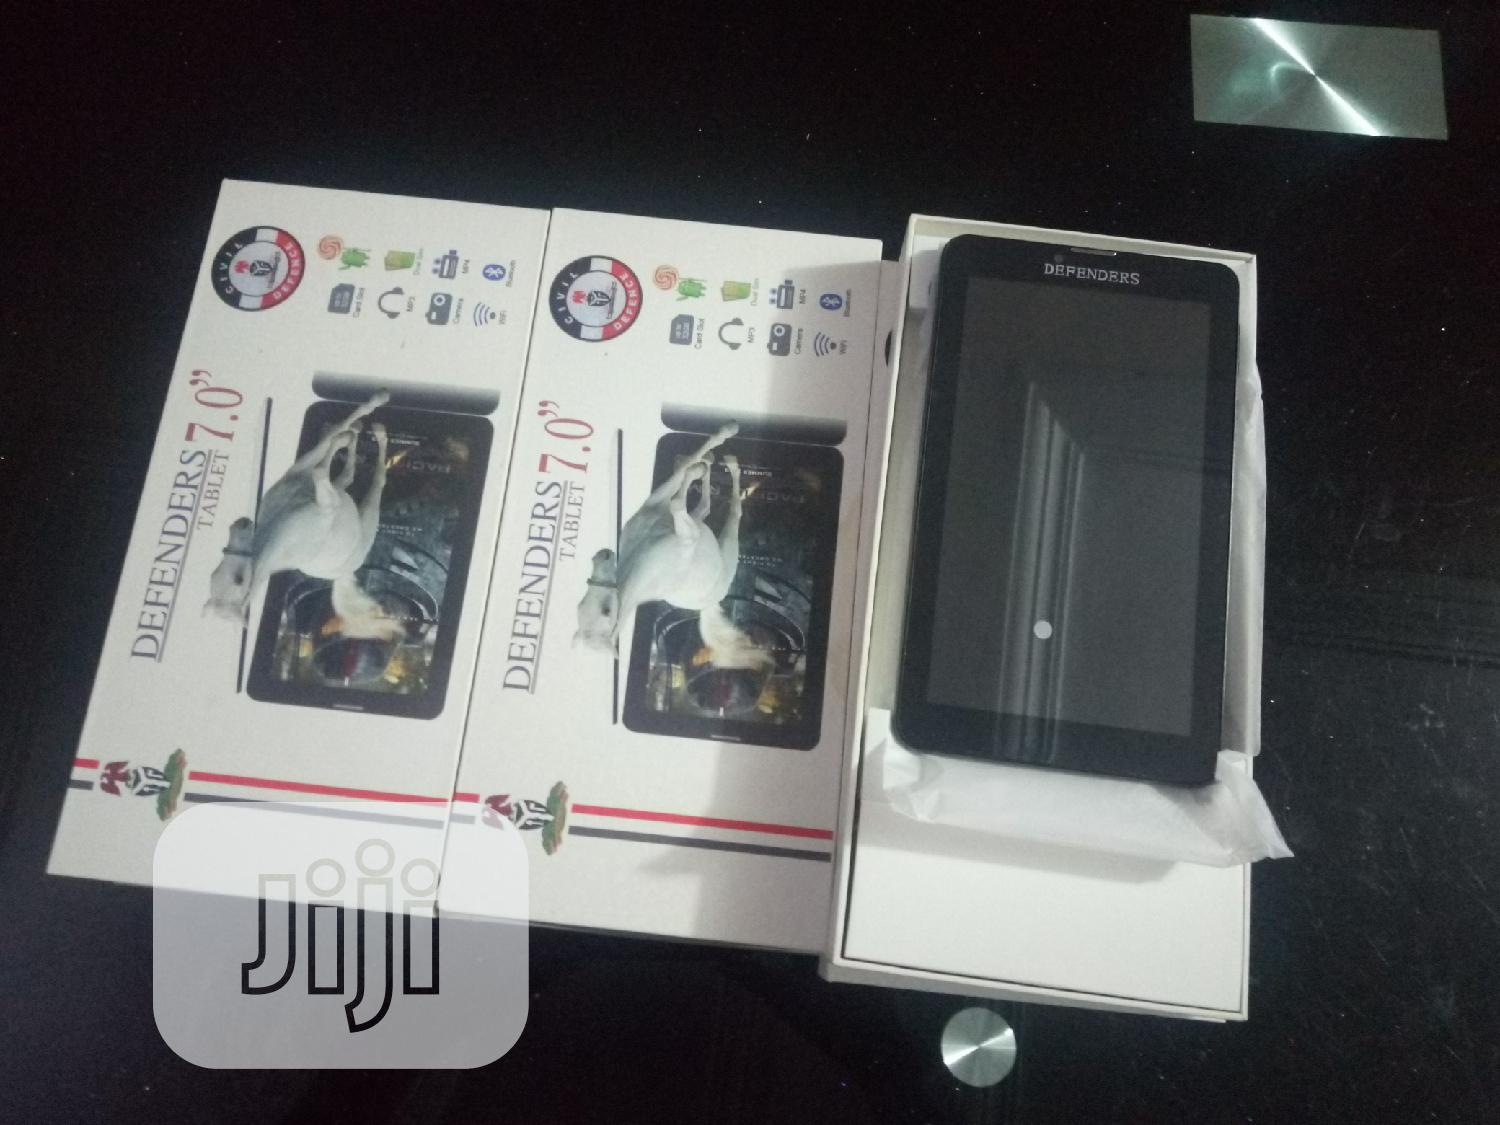 New Blu Touch Book 7.0 Plus 16 GB Gray | Tablets for sale in Kubwa, Abuja (FCT) State, Nigeria